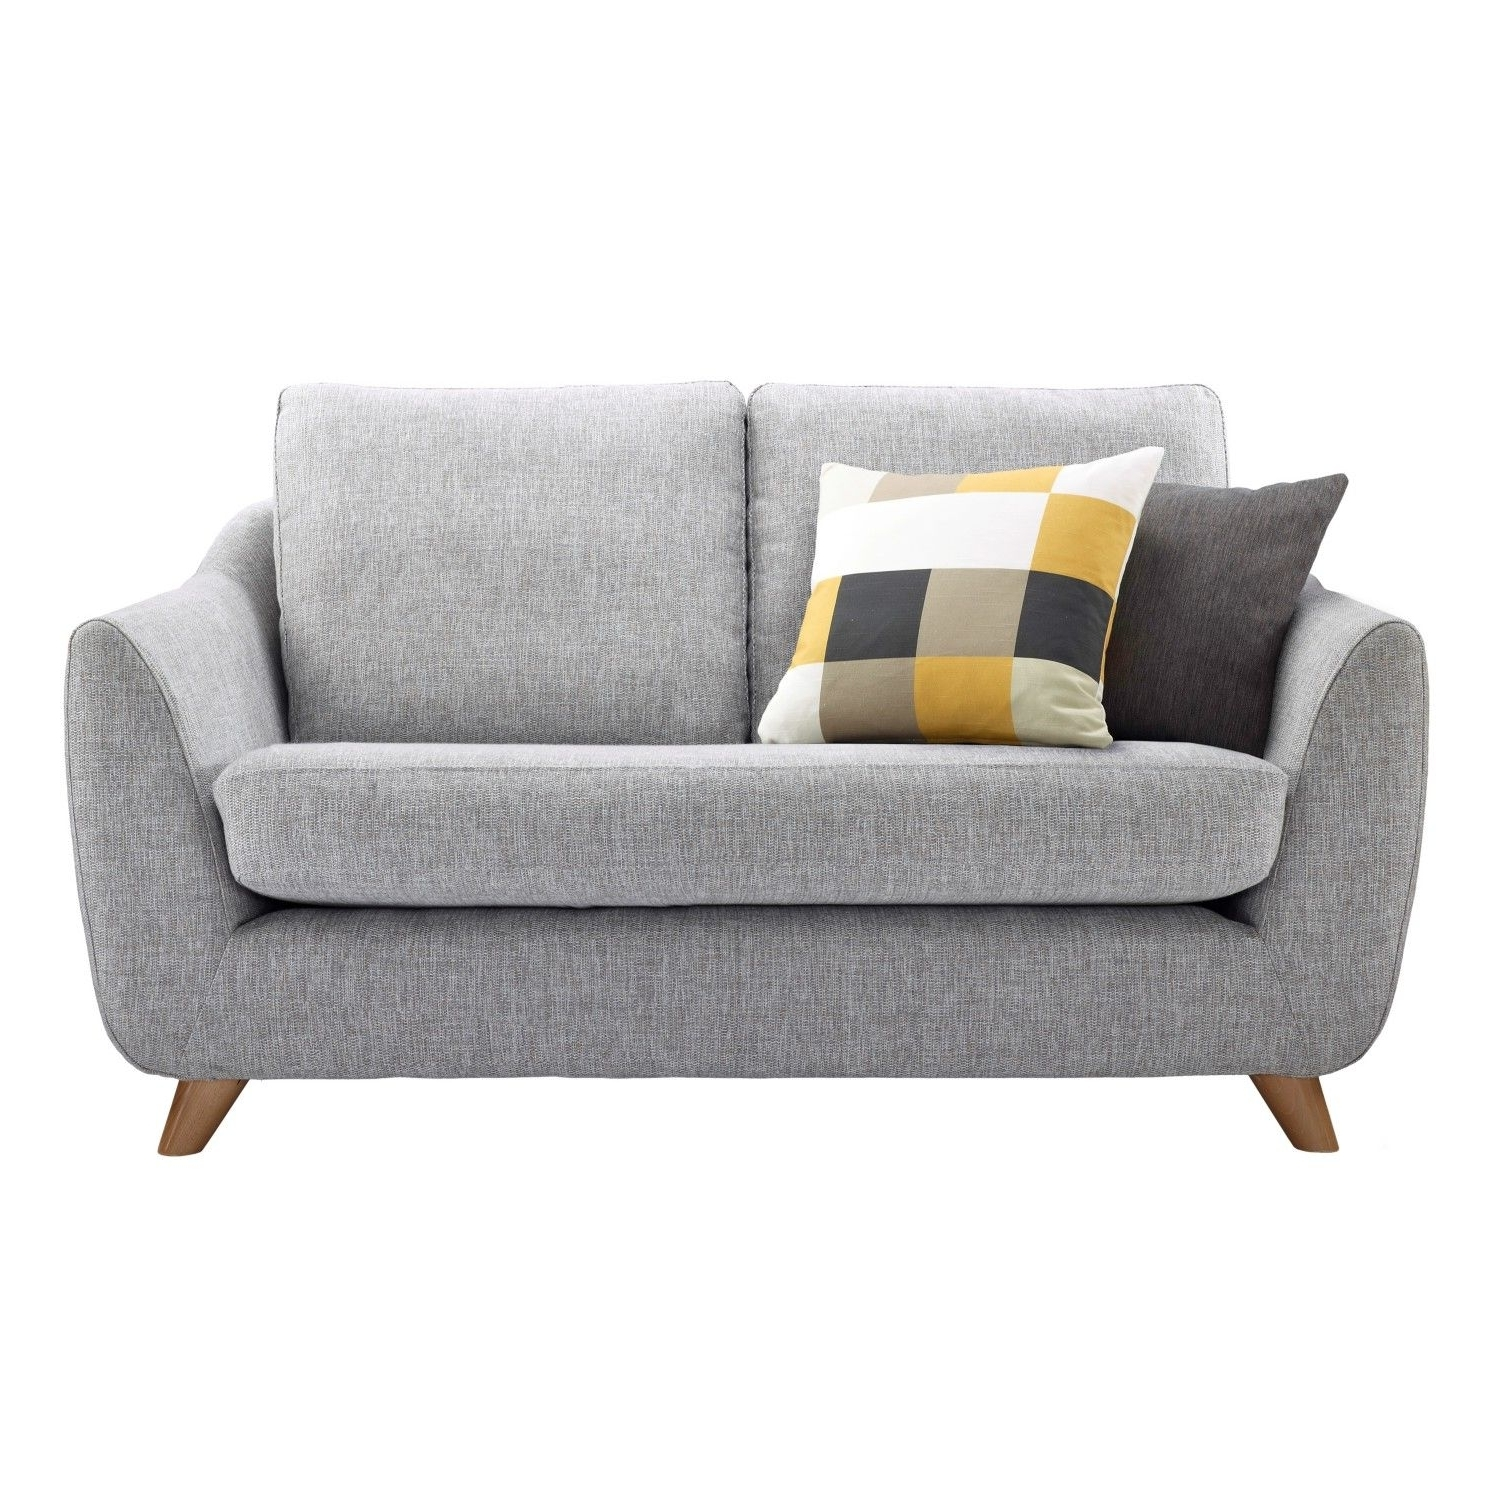 Cheap Small Sofa Decoration (View 3 of 20)